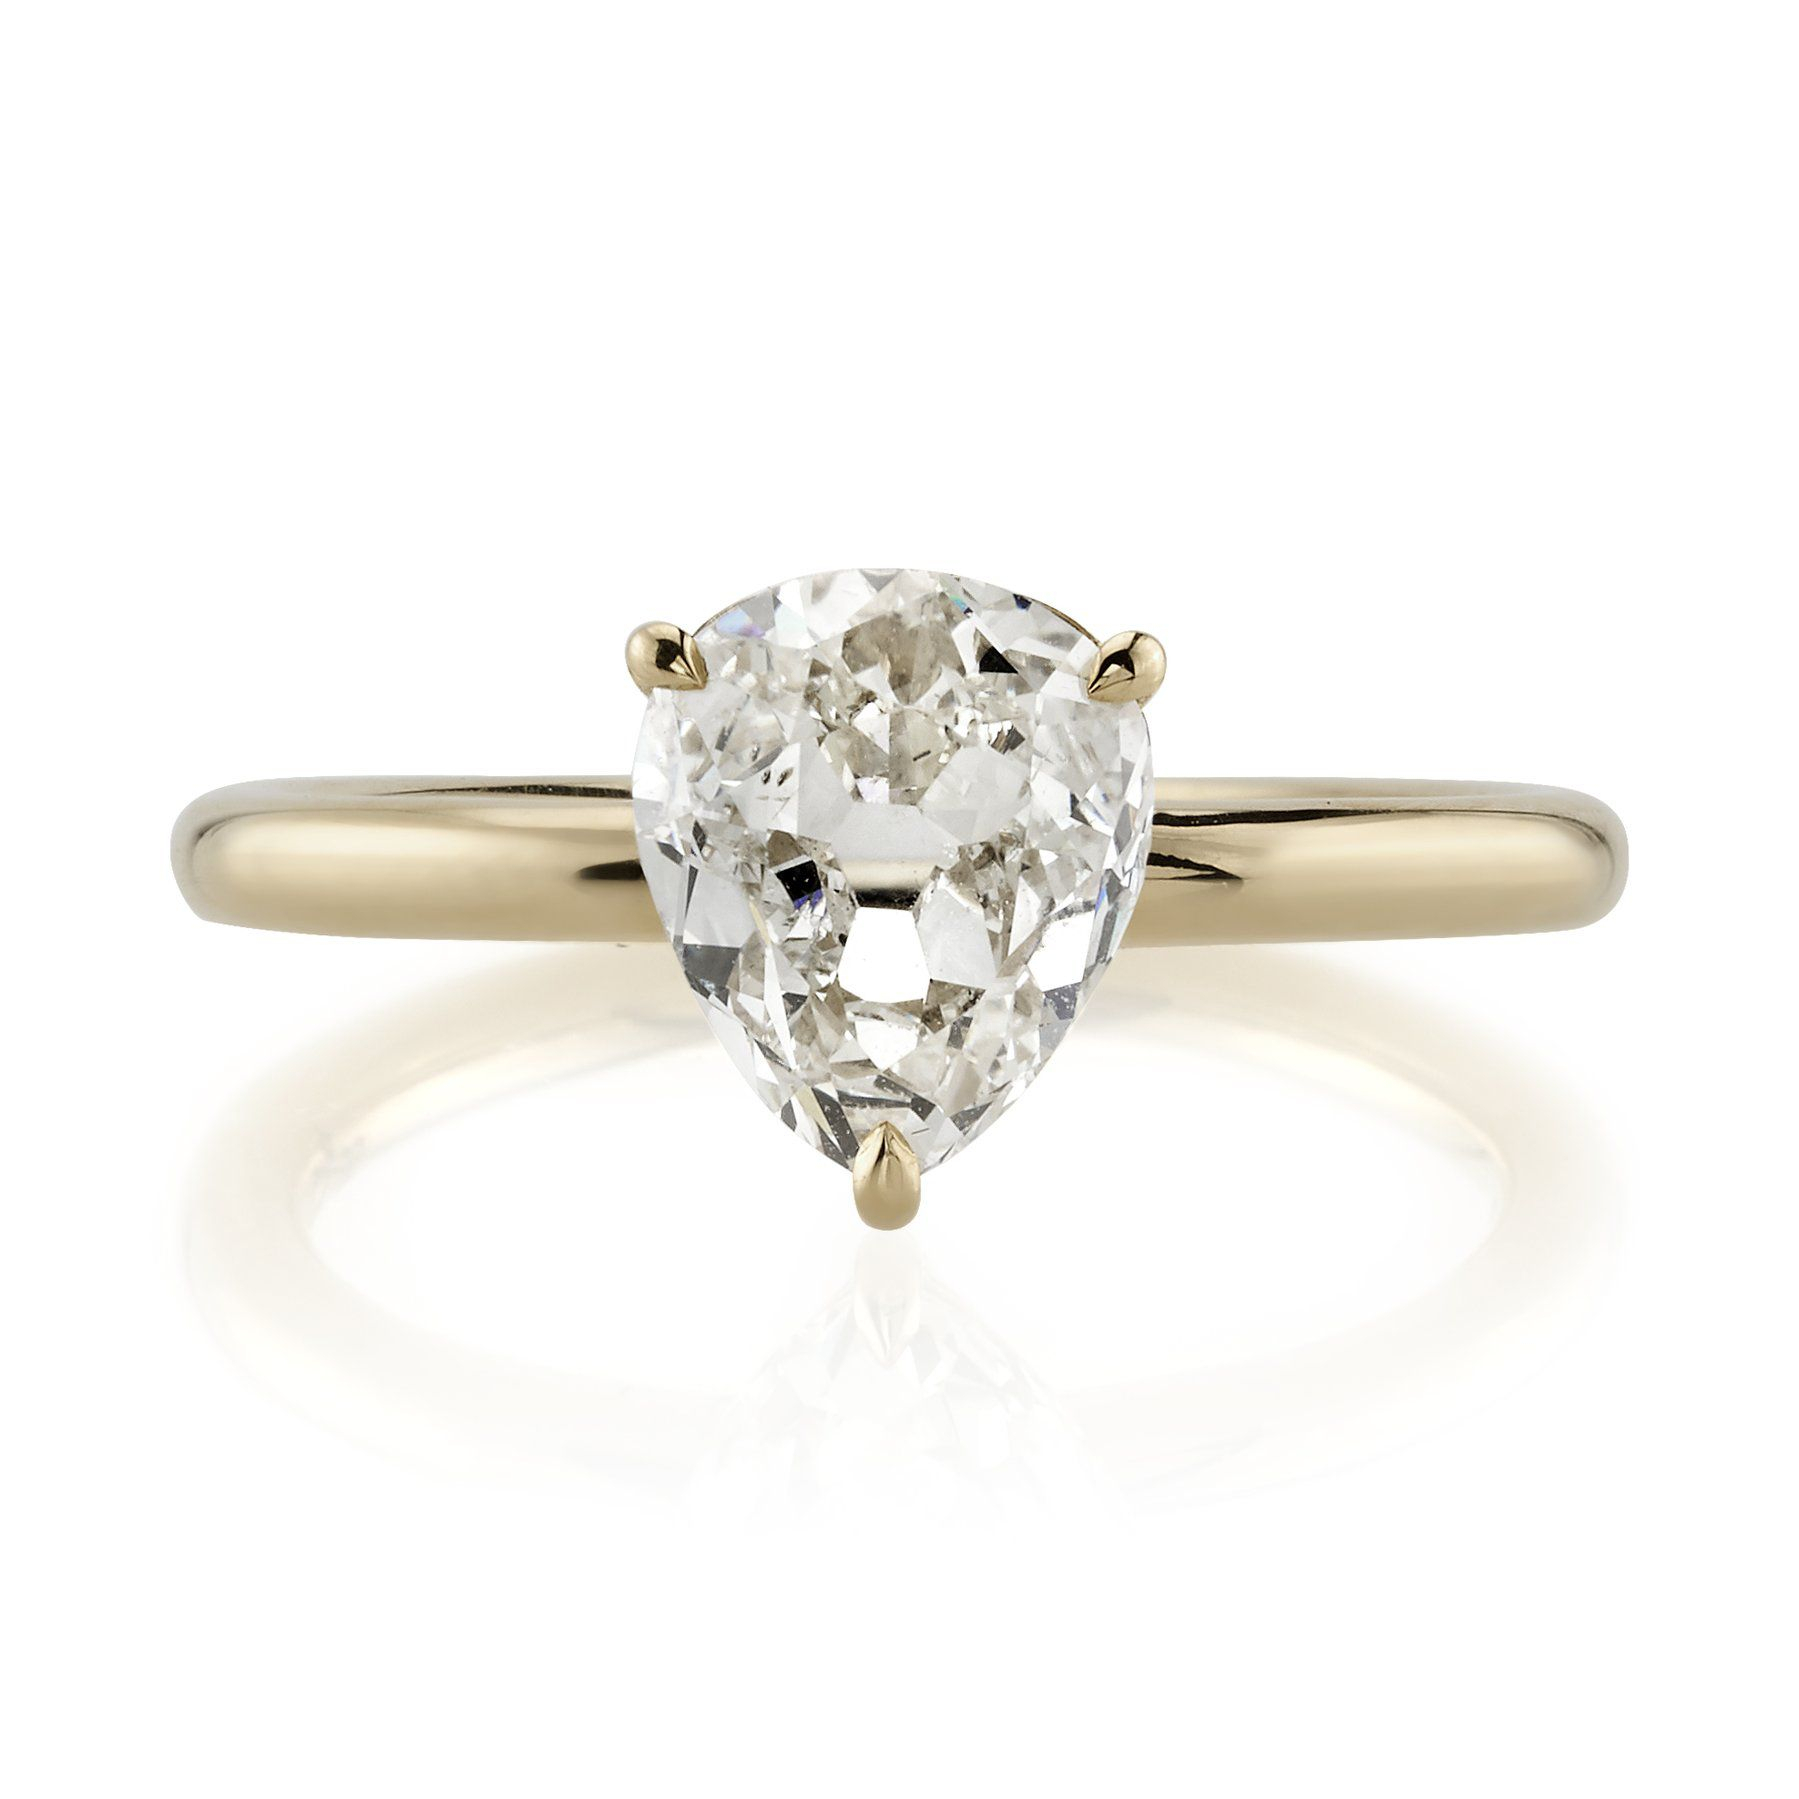 34 Pear Shaped Engagement Rings For Every Bride Regarding Tryst Pear Shaped Diamond Engagement Rings (View 10 of 25)